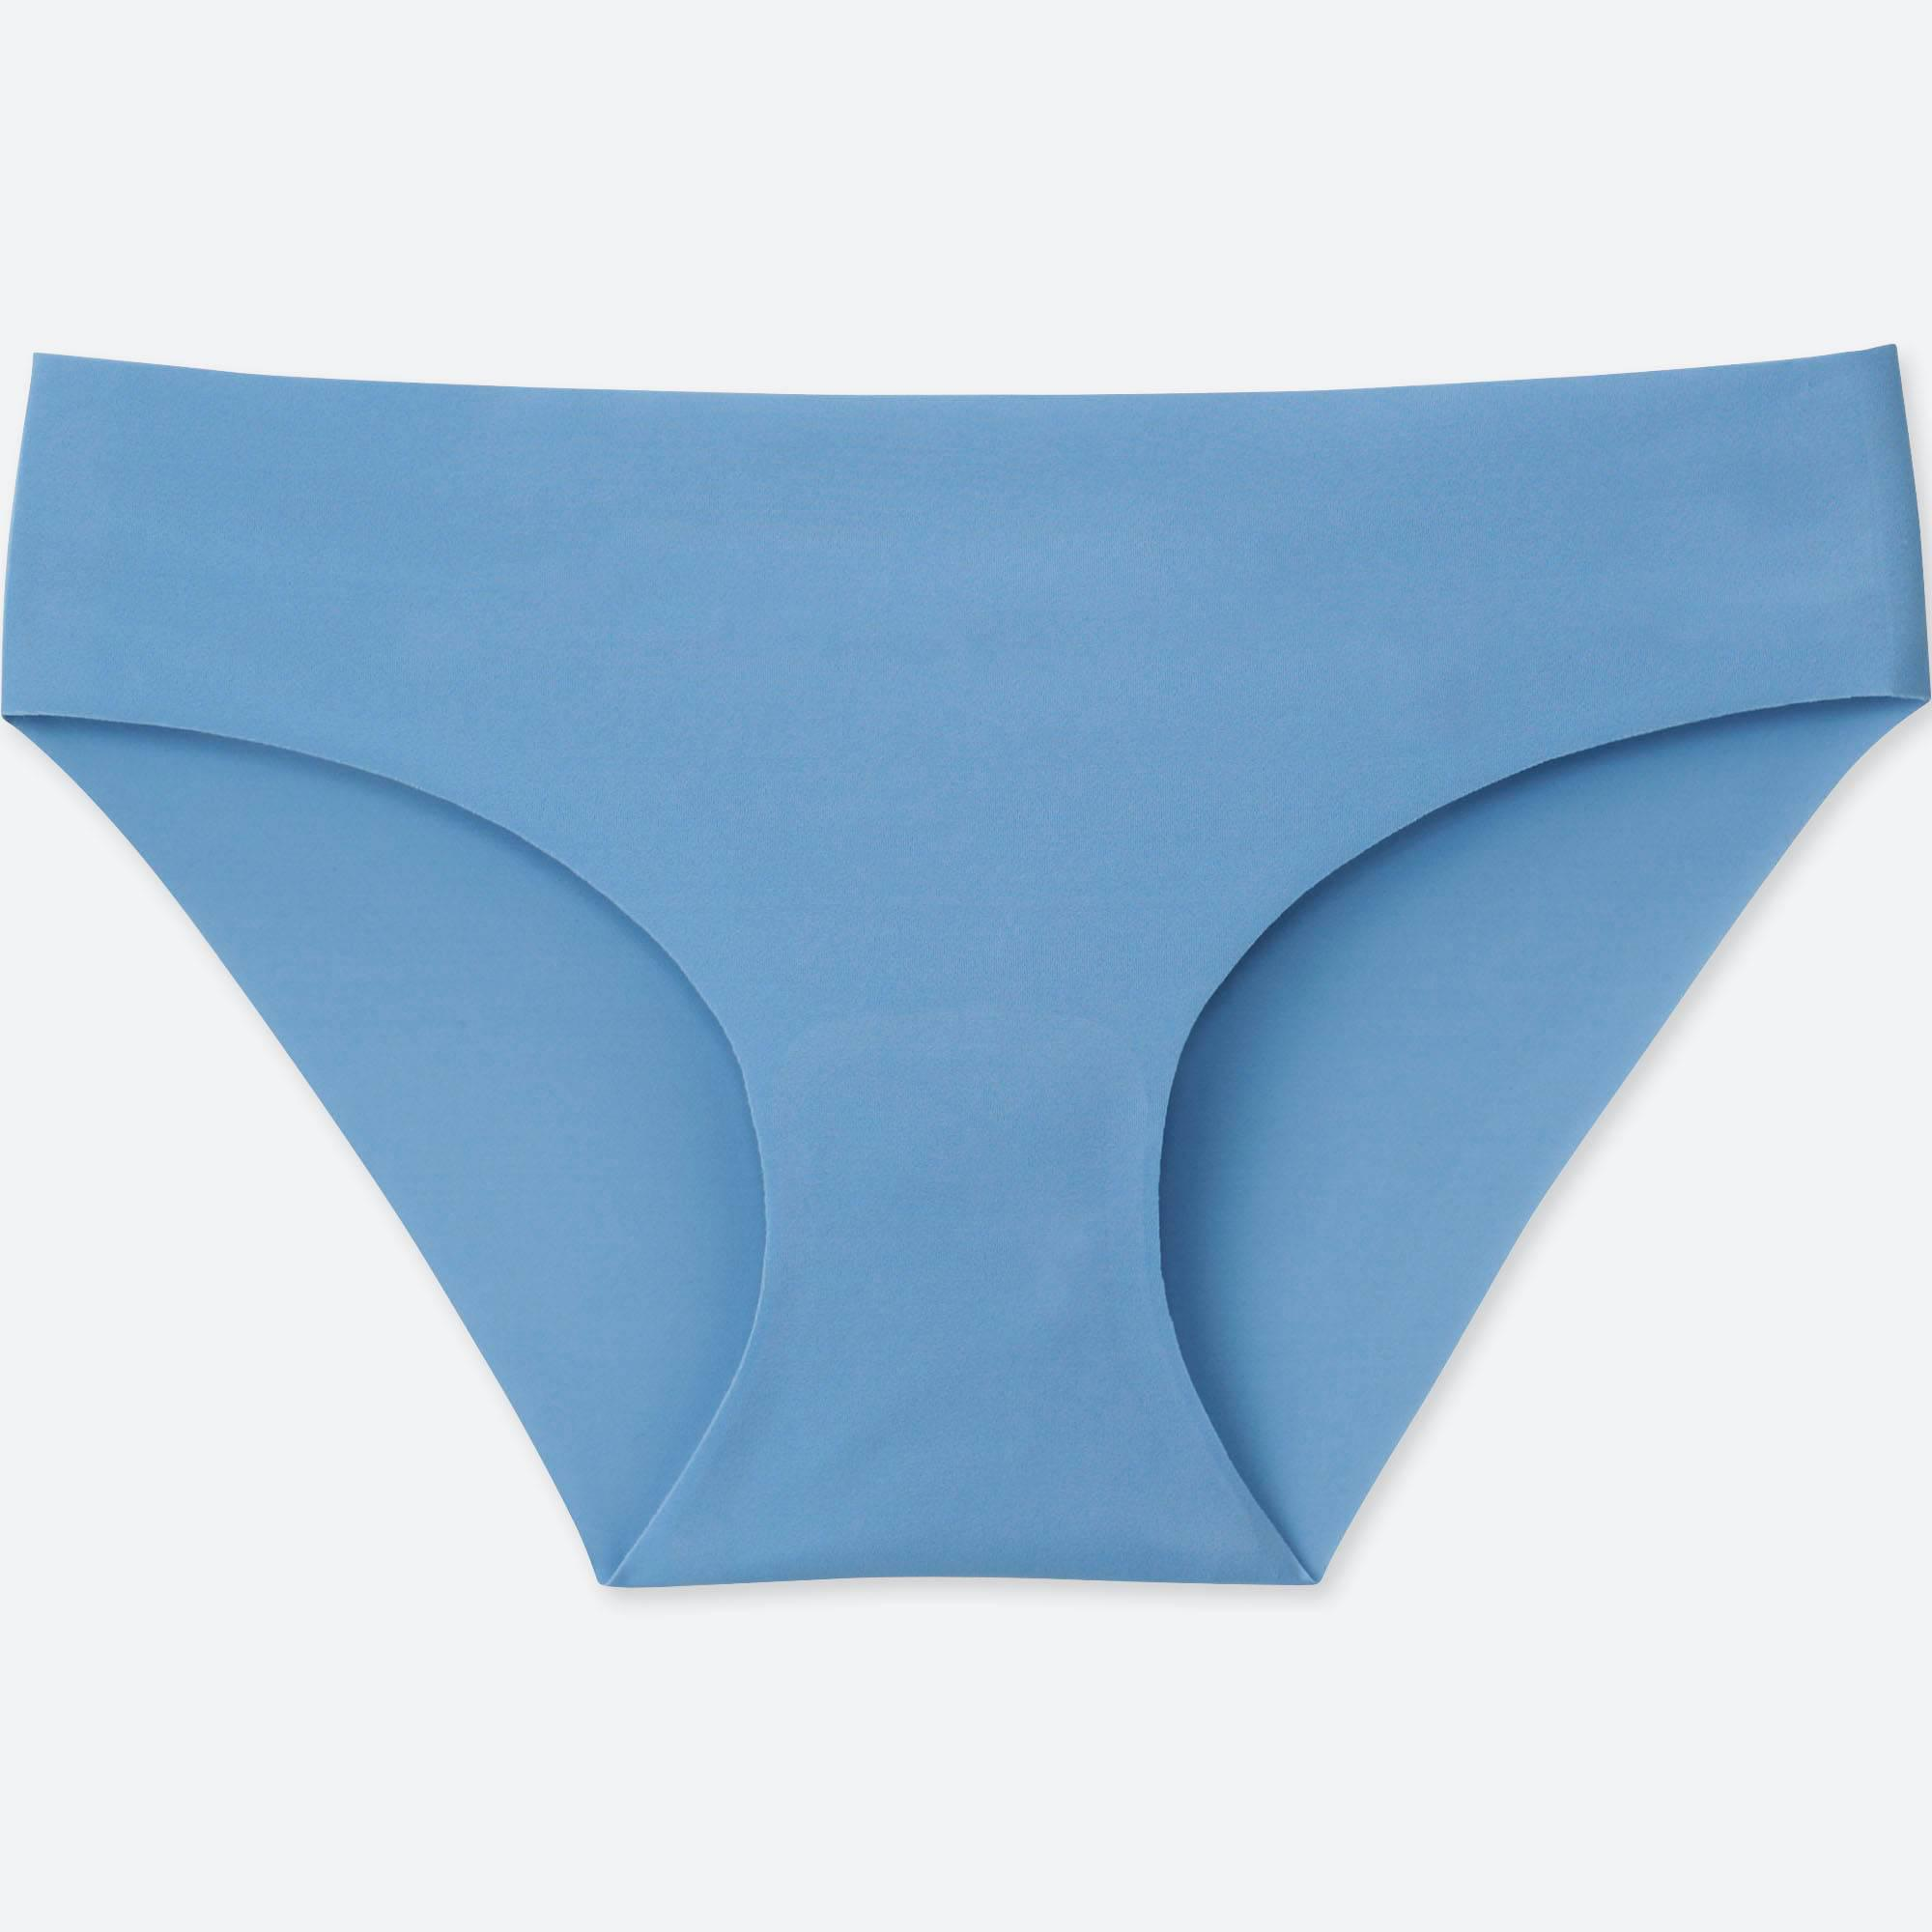 42c6bff16e Lyst - Uniqlo Women Airism Ultra Seamless Bikini Shorts in Blue